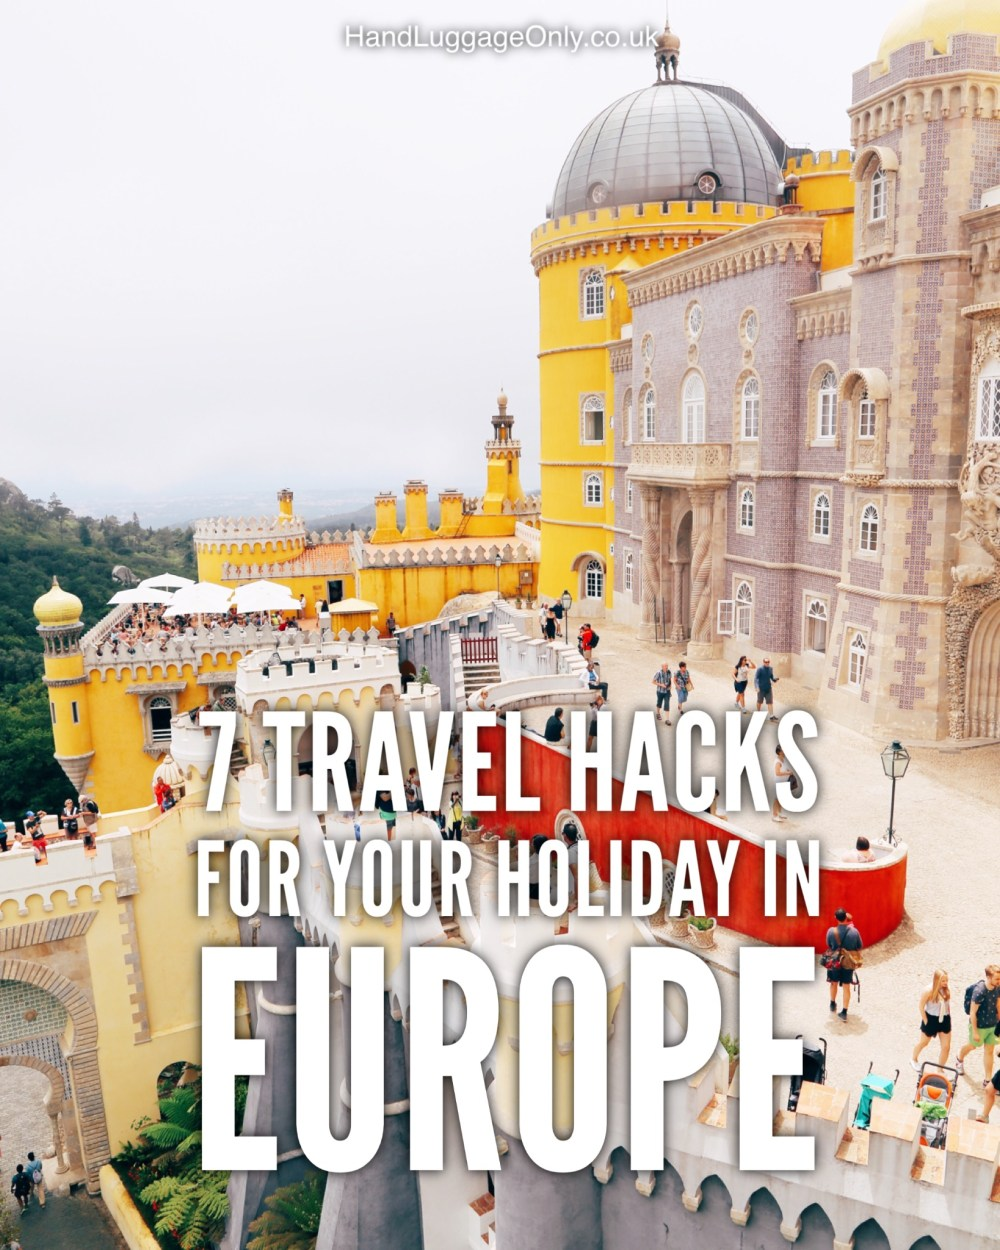 7 Travel Hacks For Your Holiday In Europe (2)